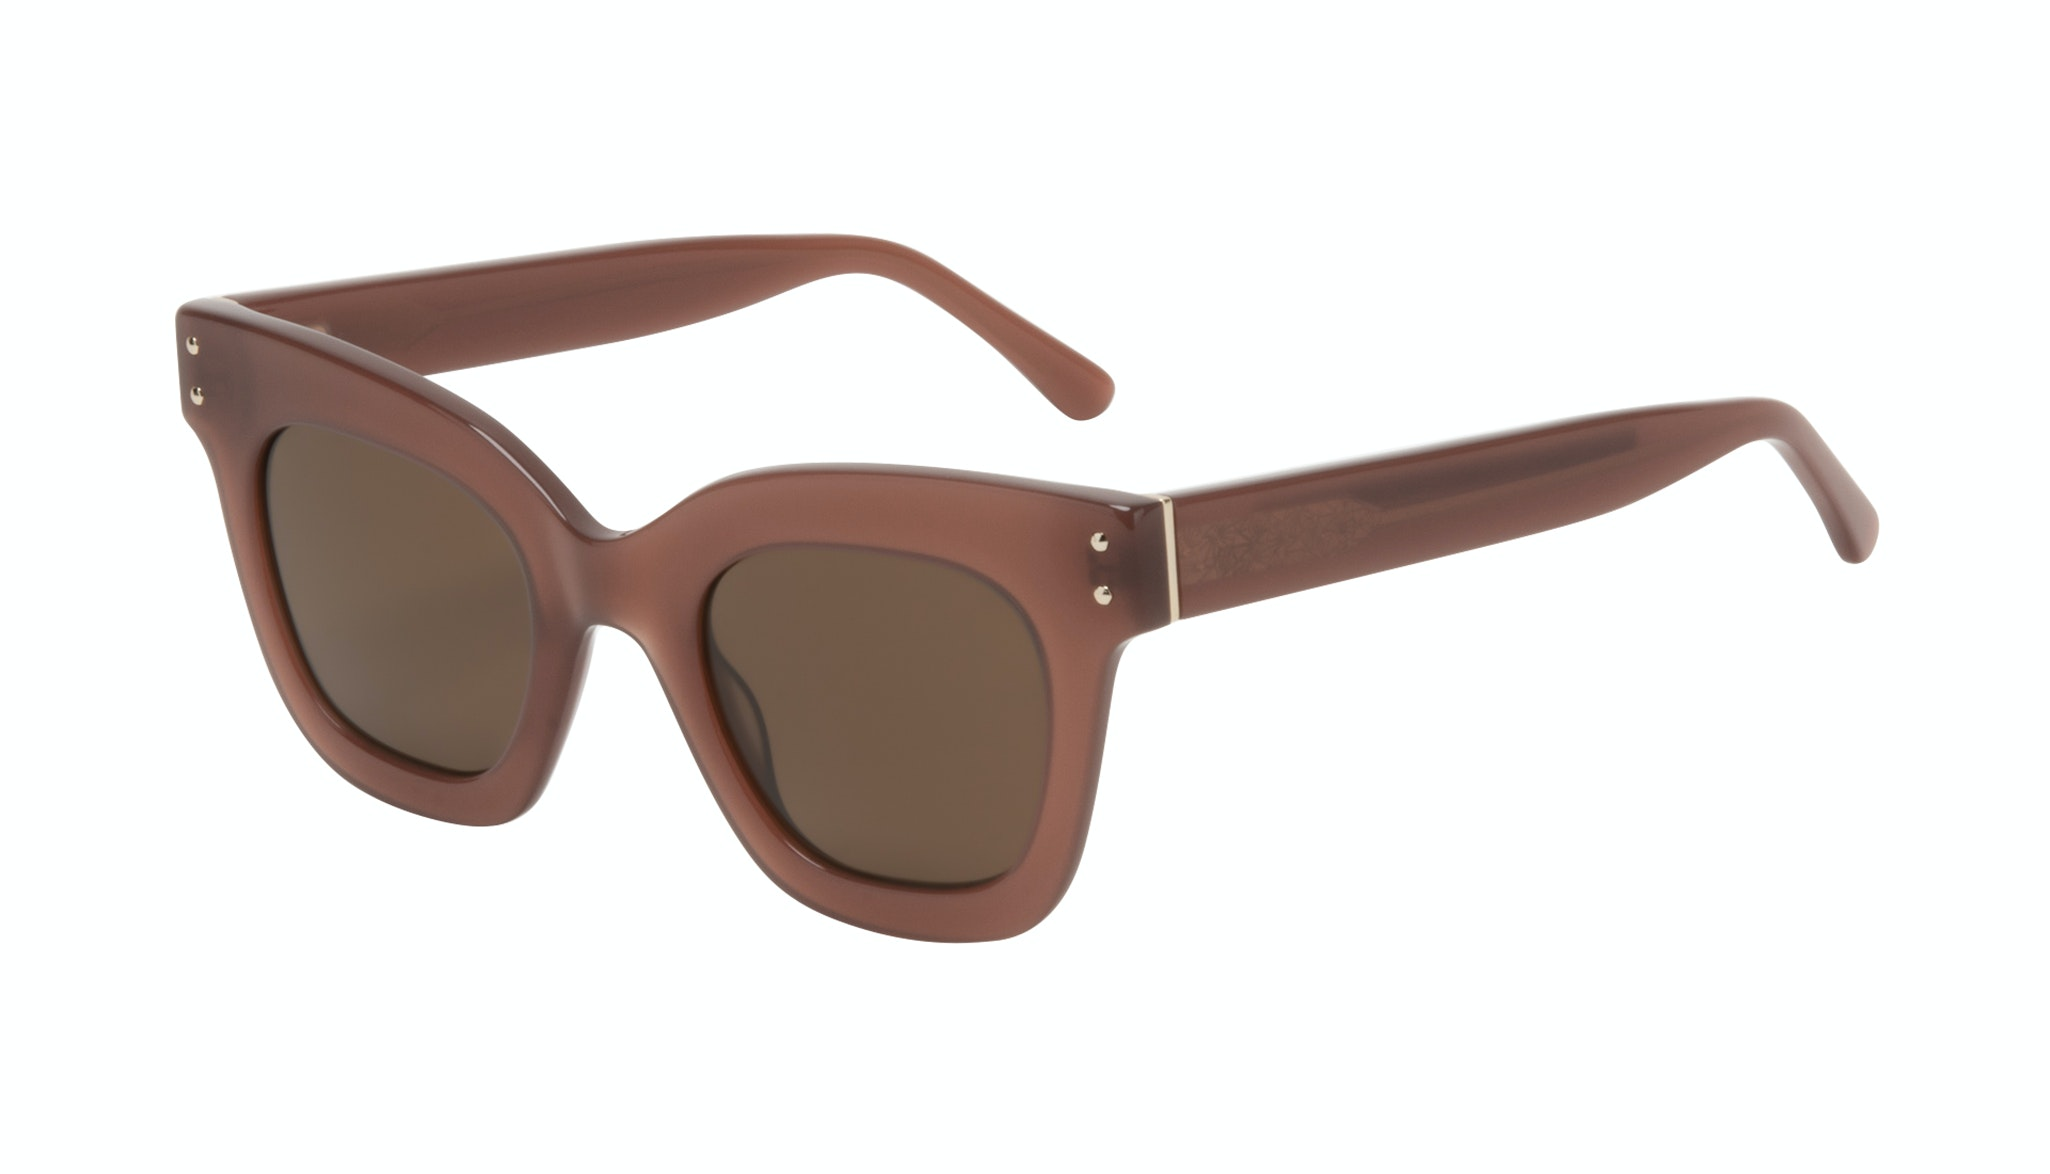 Affordable Fashion Glasses Square Sunglasses Women Fever Toffee Tilt